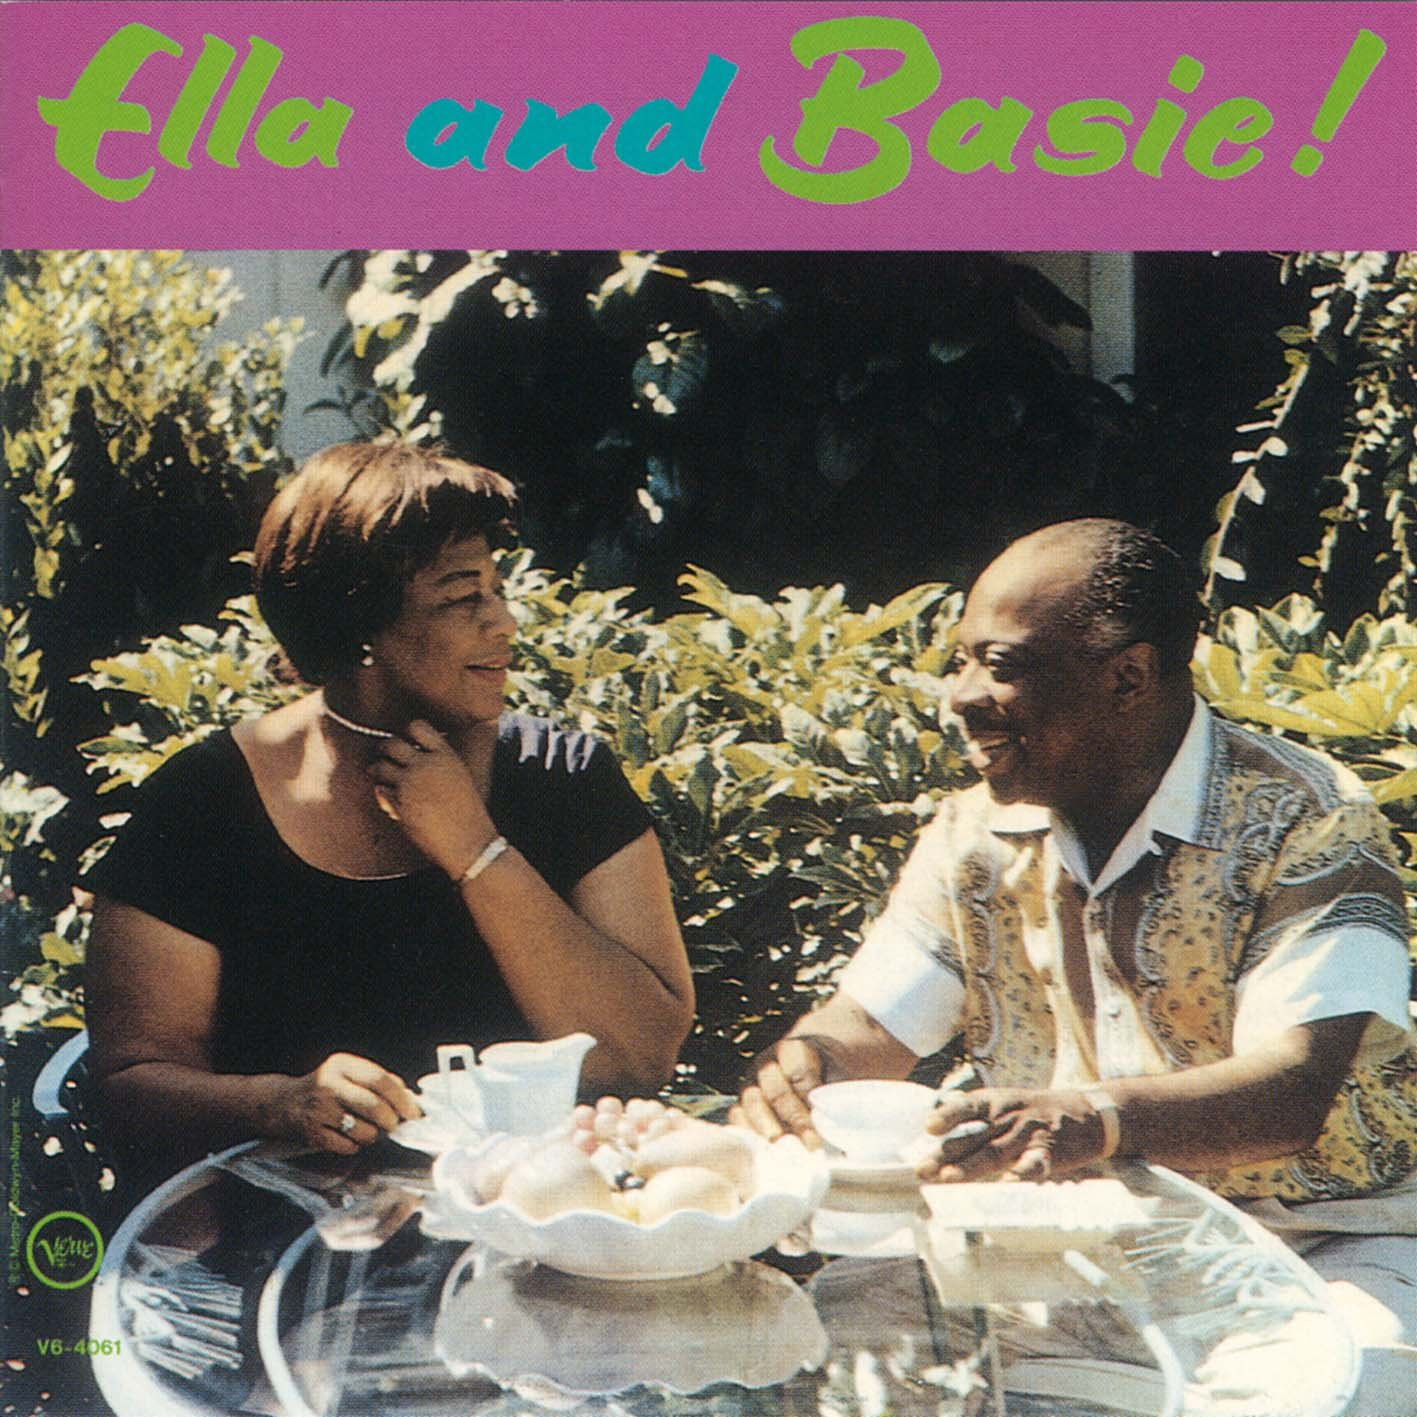 Ella And Basie! On the Sunny Side of the Street